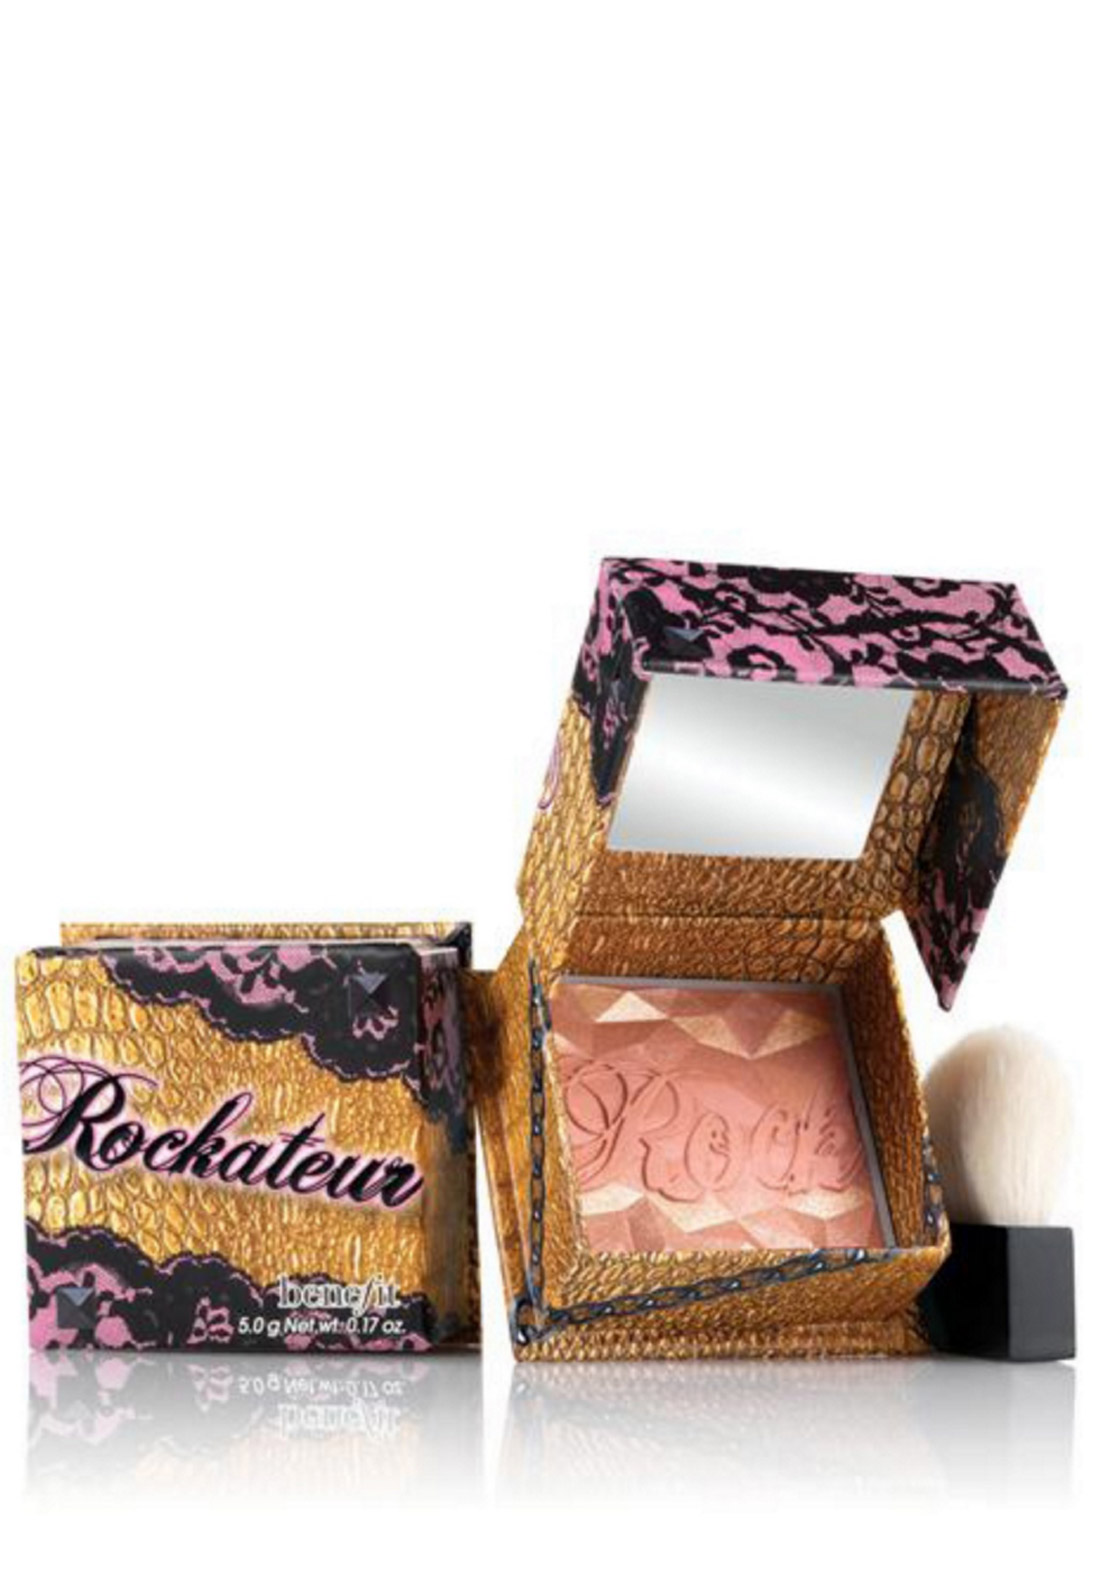 Benefit Rockateur Cheek Face Powder